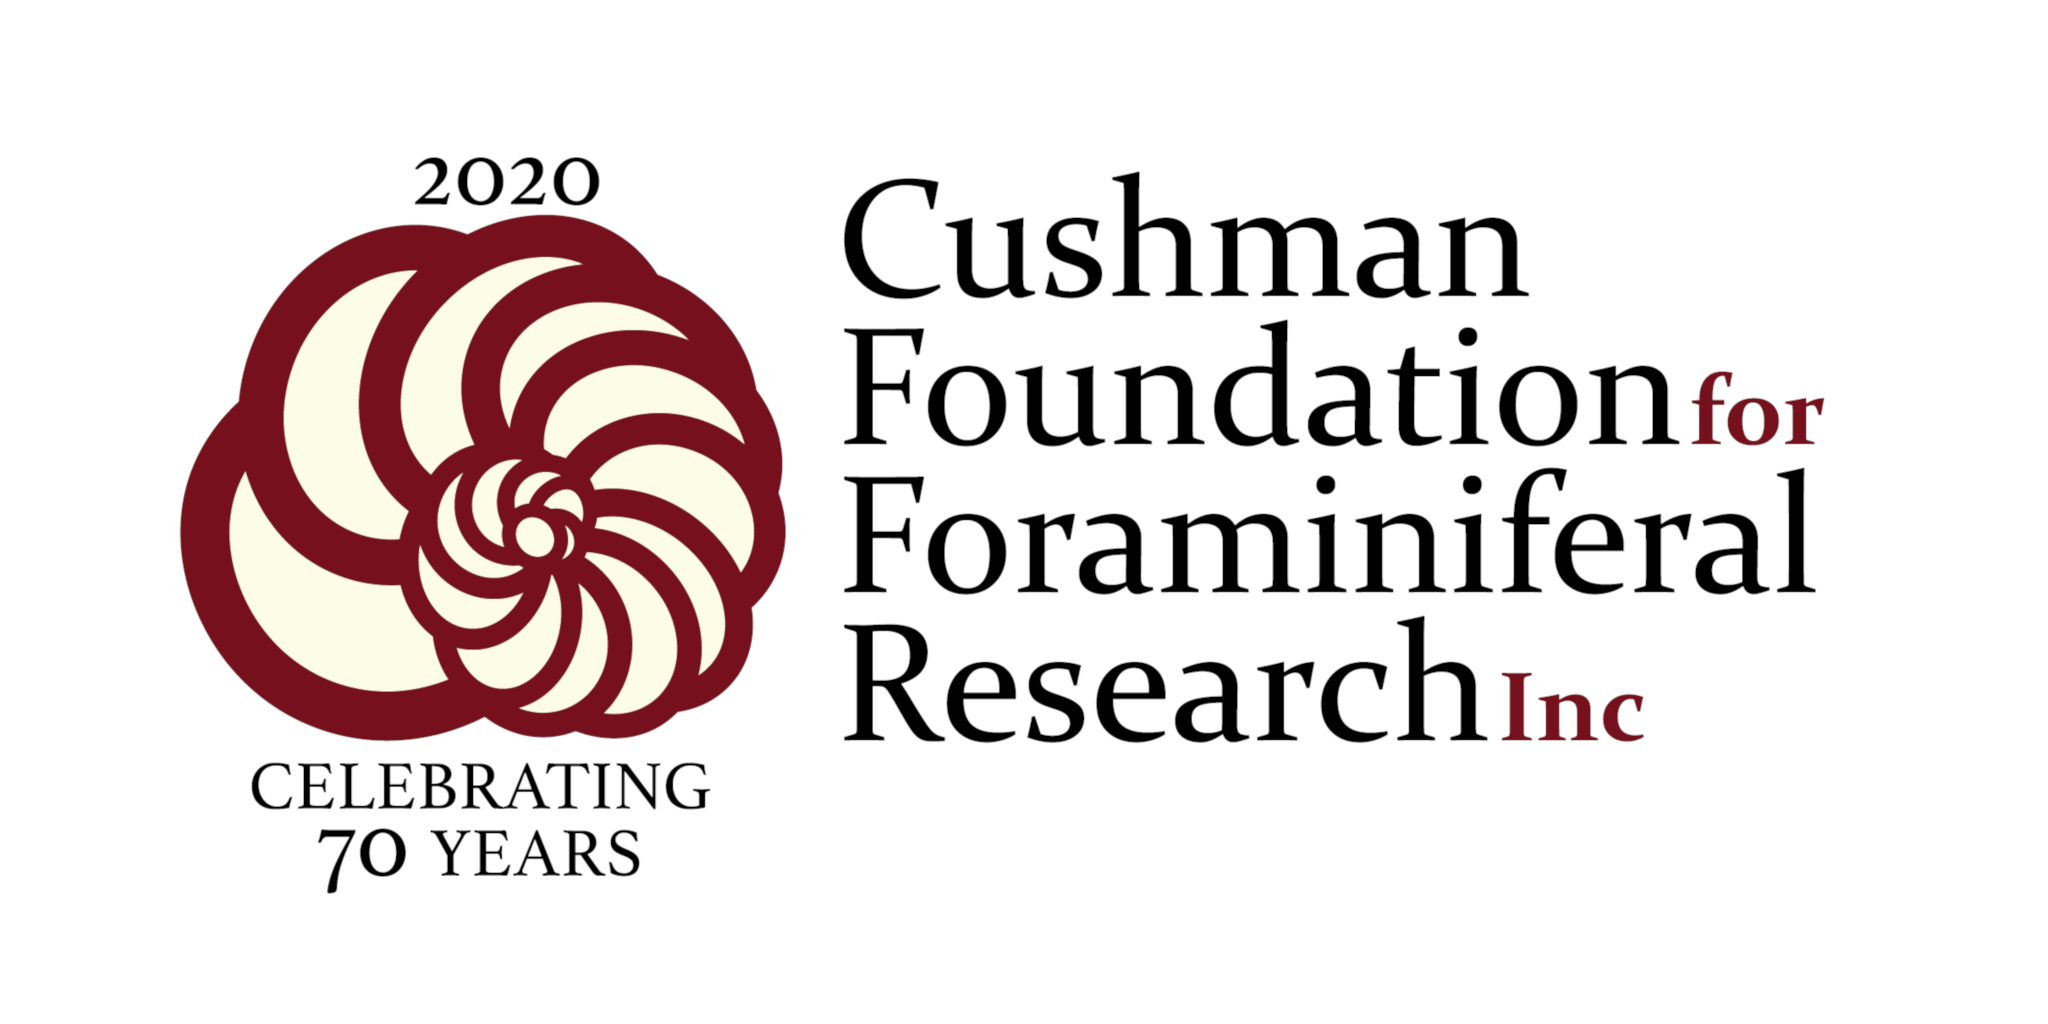 Cushman Foundation for Foraminiferal Research